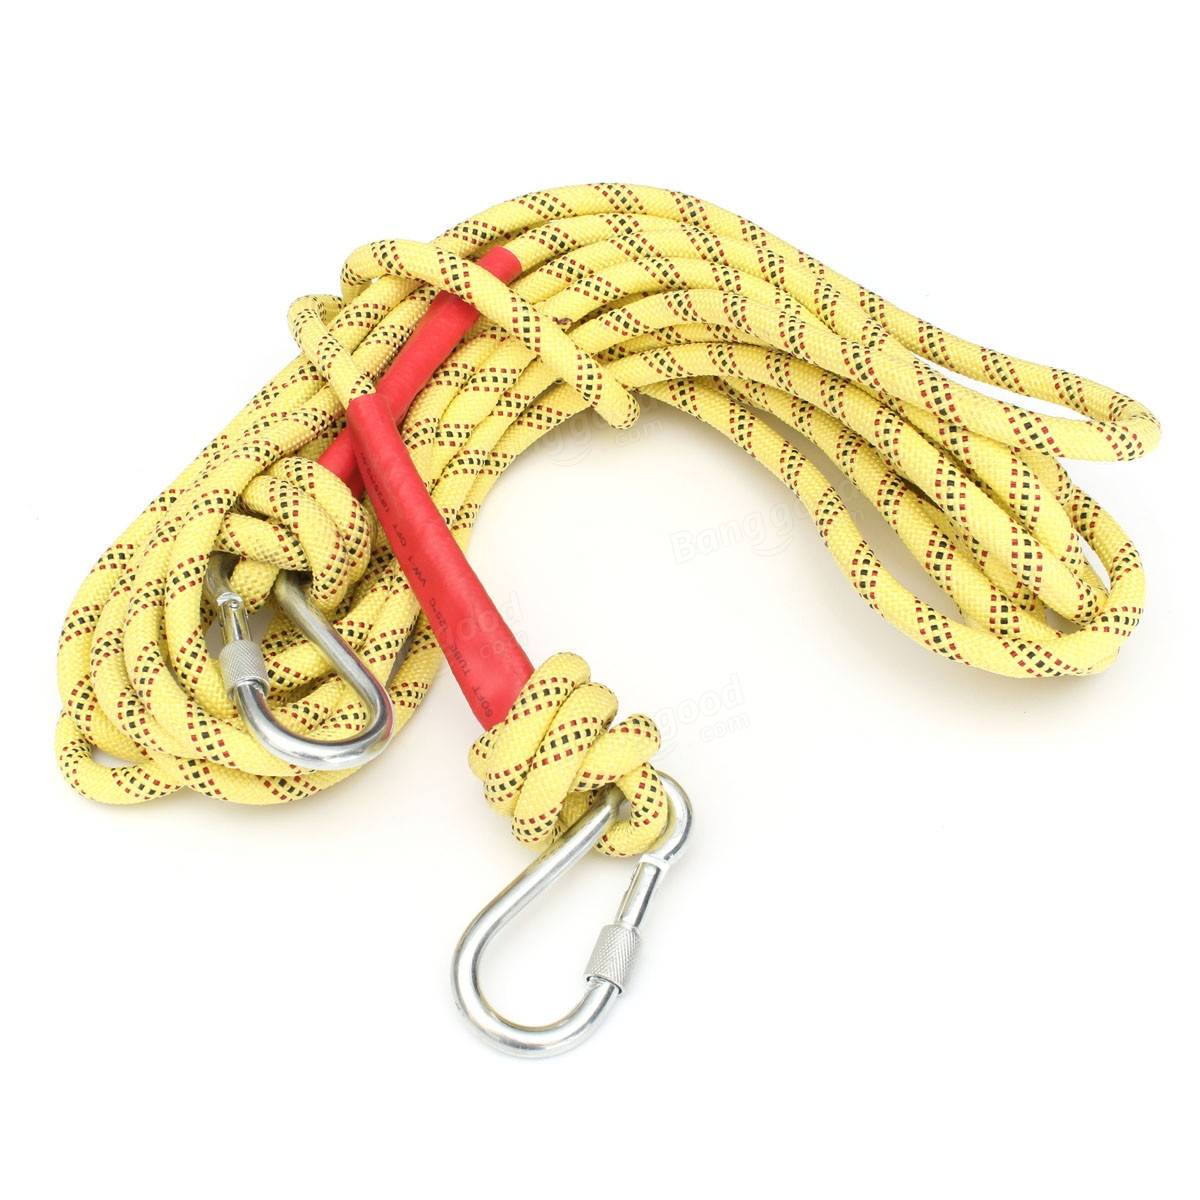 10M Rock Mountain Climbing Rope Outdoor Survival String Dynamic Paracord With Two Hooks